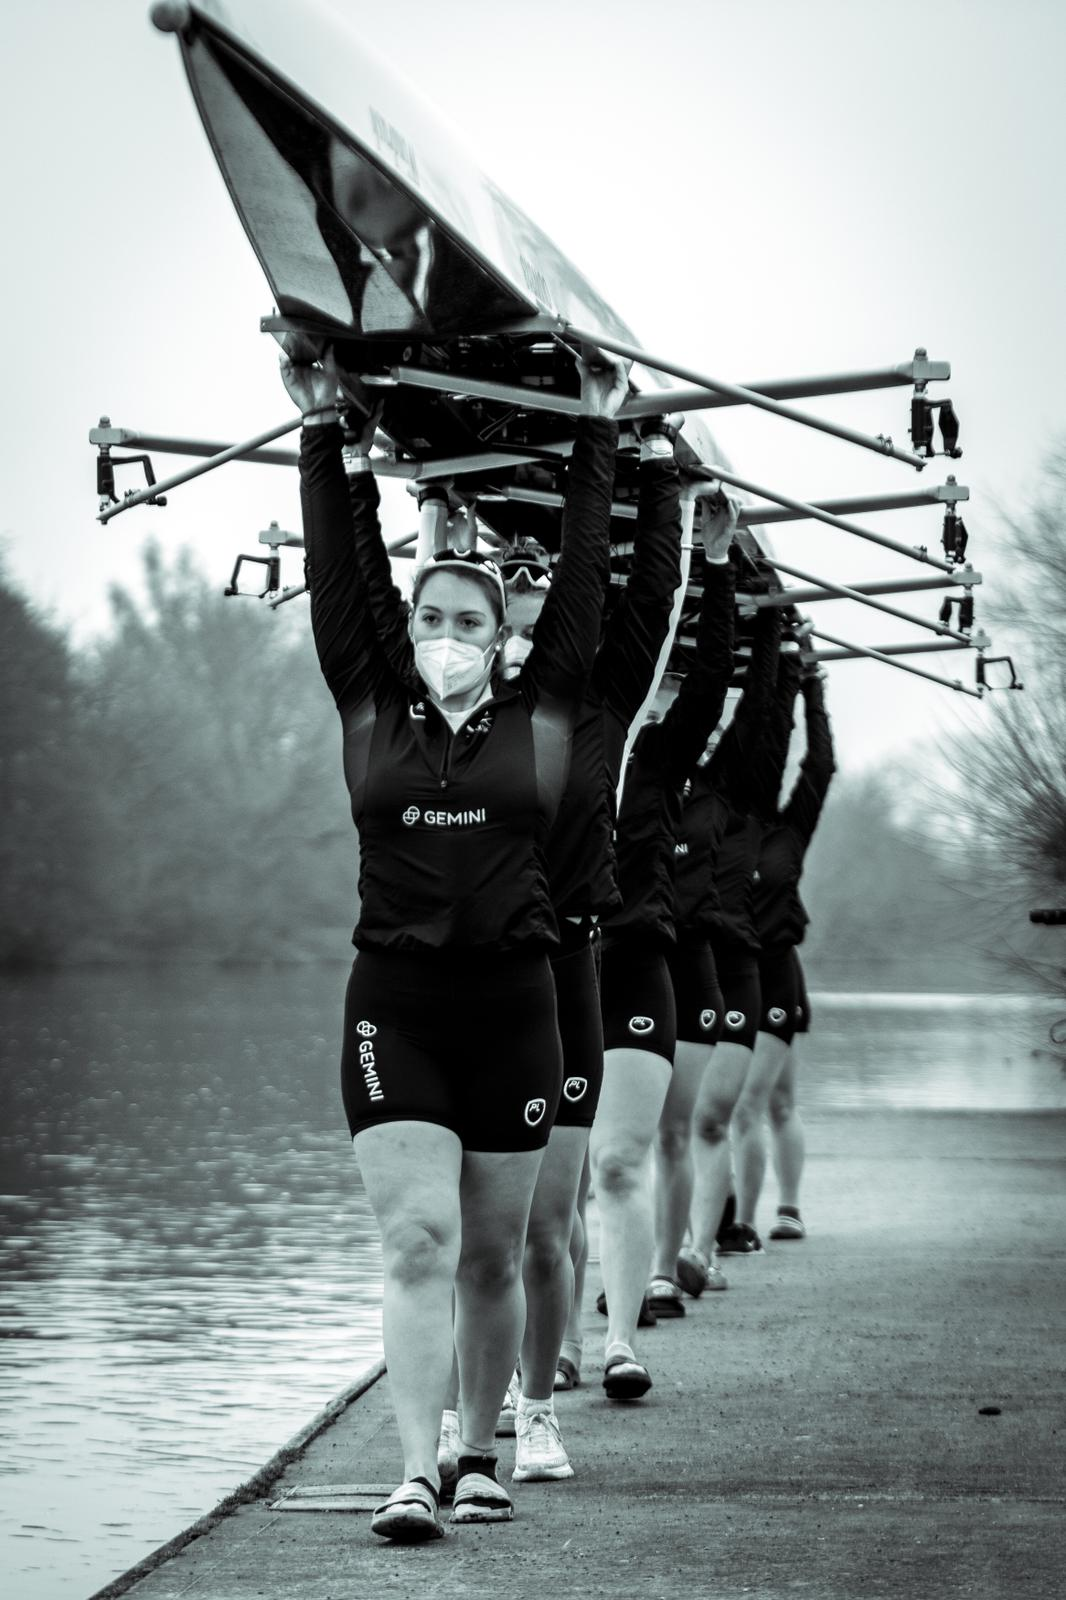 Pictured above: Megan Stoker, racing in the Women's Boat Race (Oxford v Cambridge) - photography credits: Benedict Tufnell/Row 360